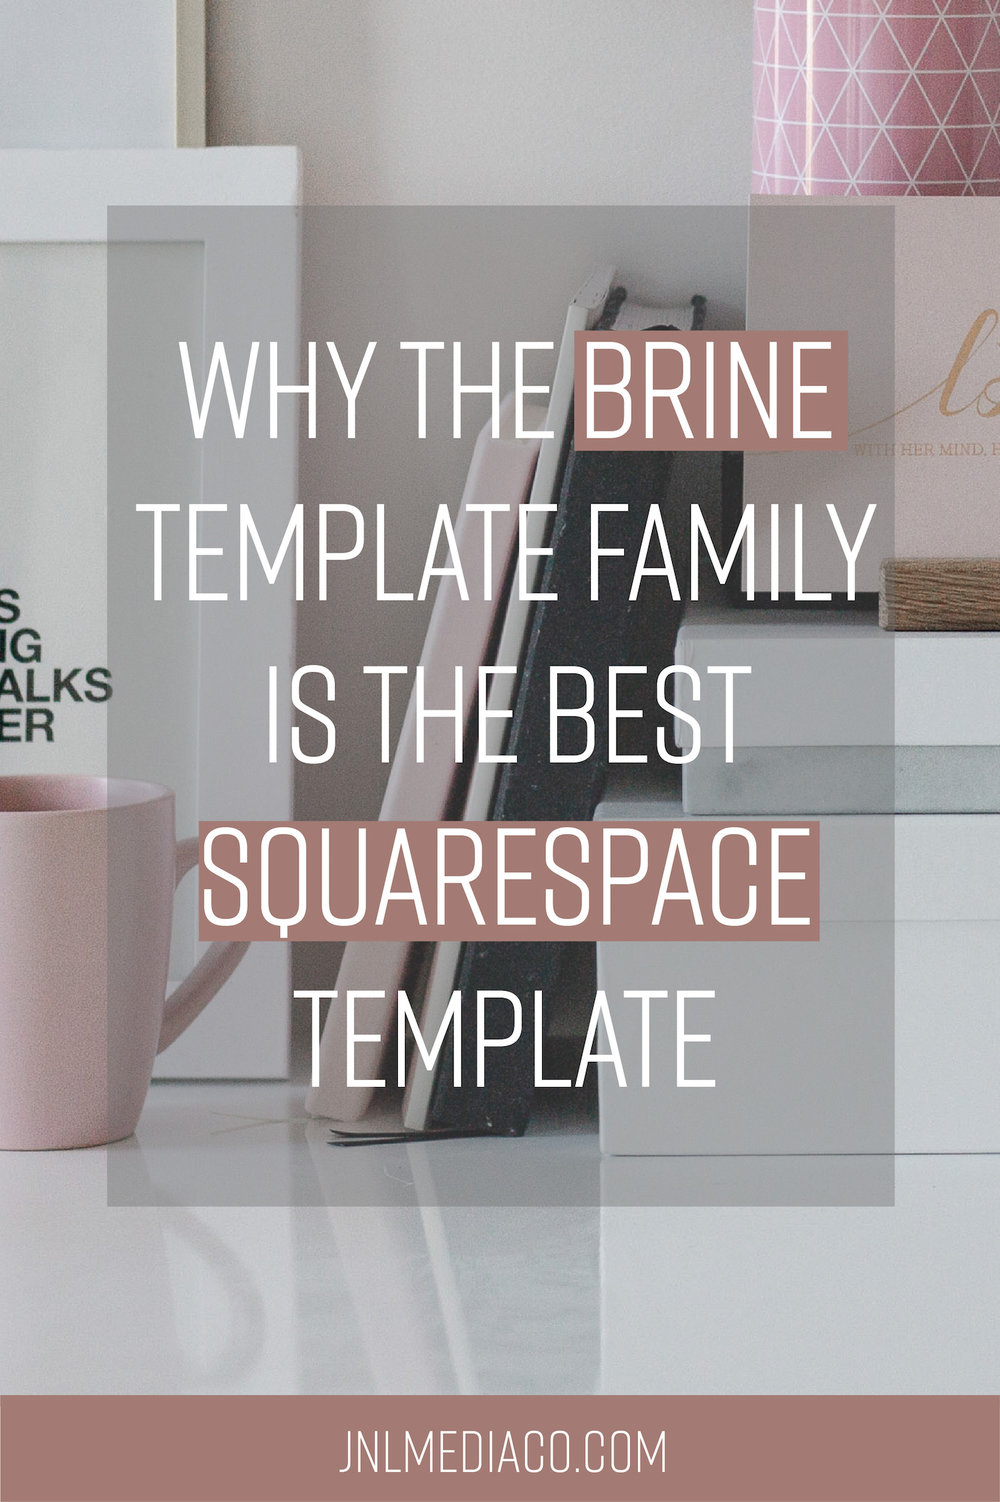 Why The Brine Template Family Is The Best Squarespace Template Jnl